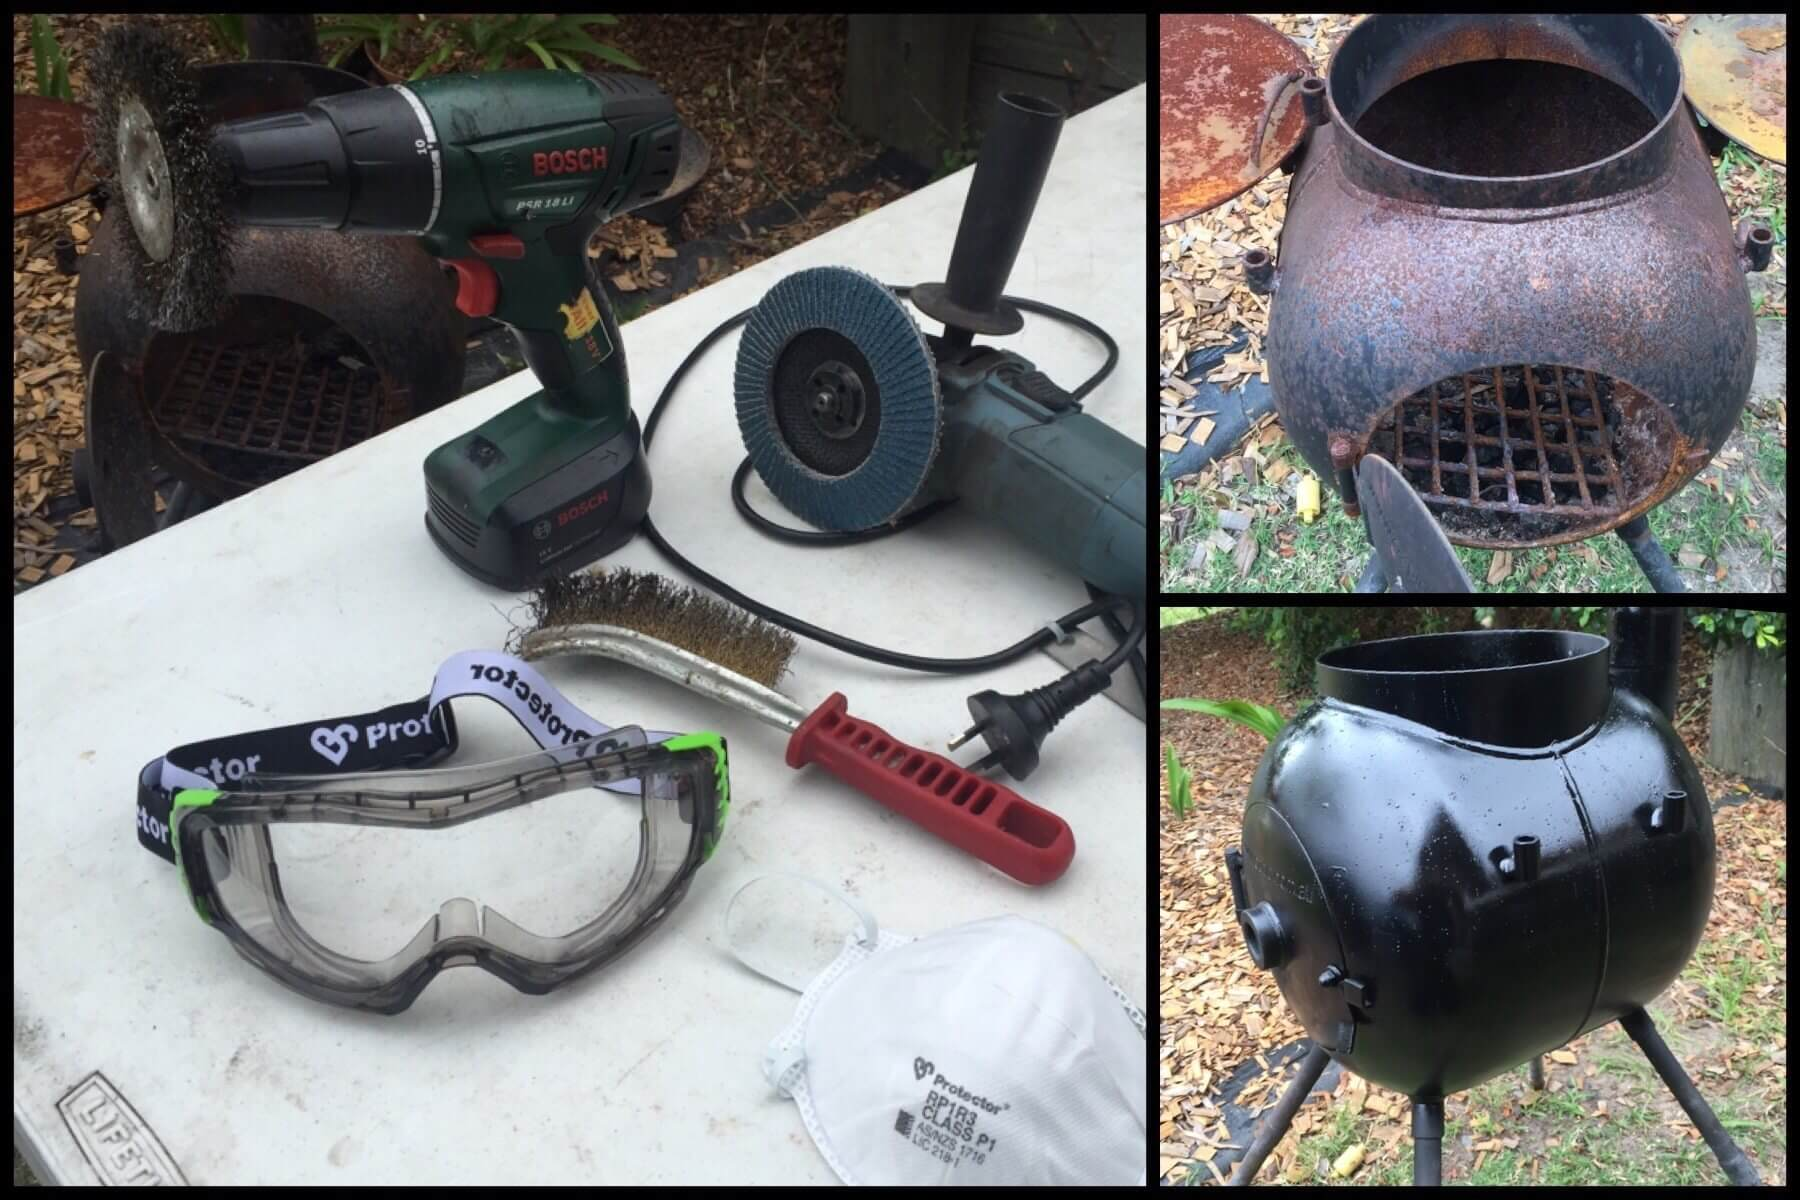 Cleaning and repainting a rusty Ozpig using hand tools | The Camp Oven Cook